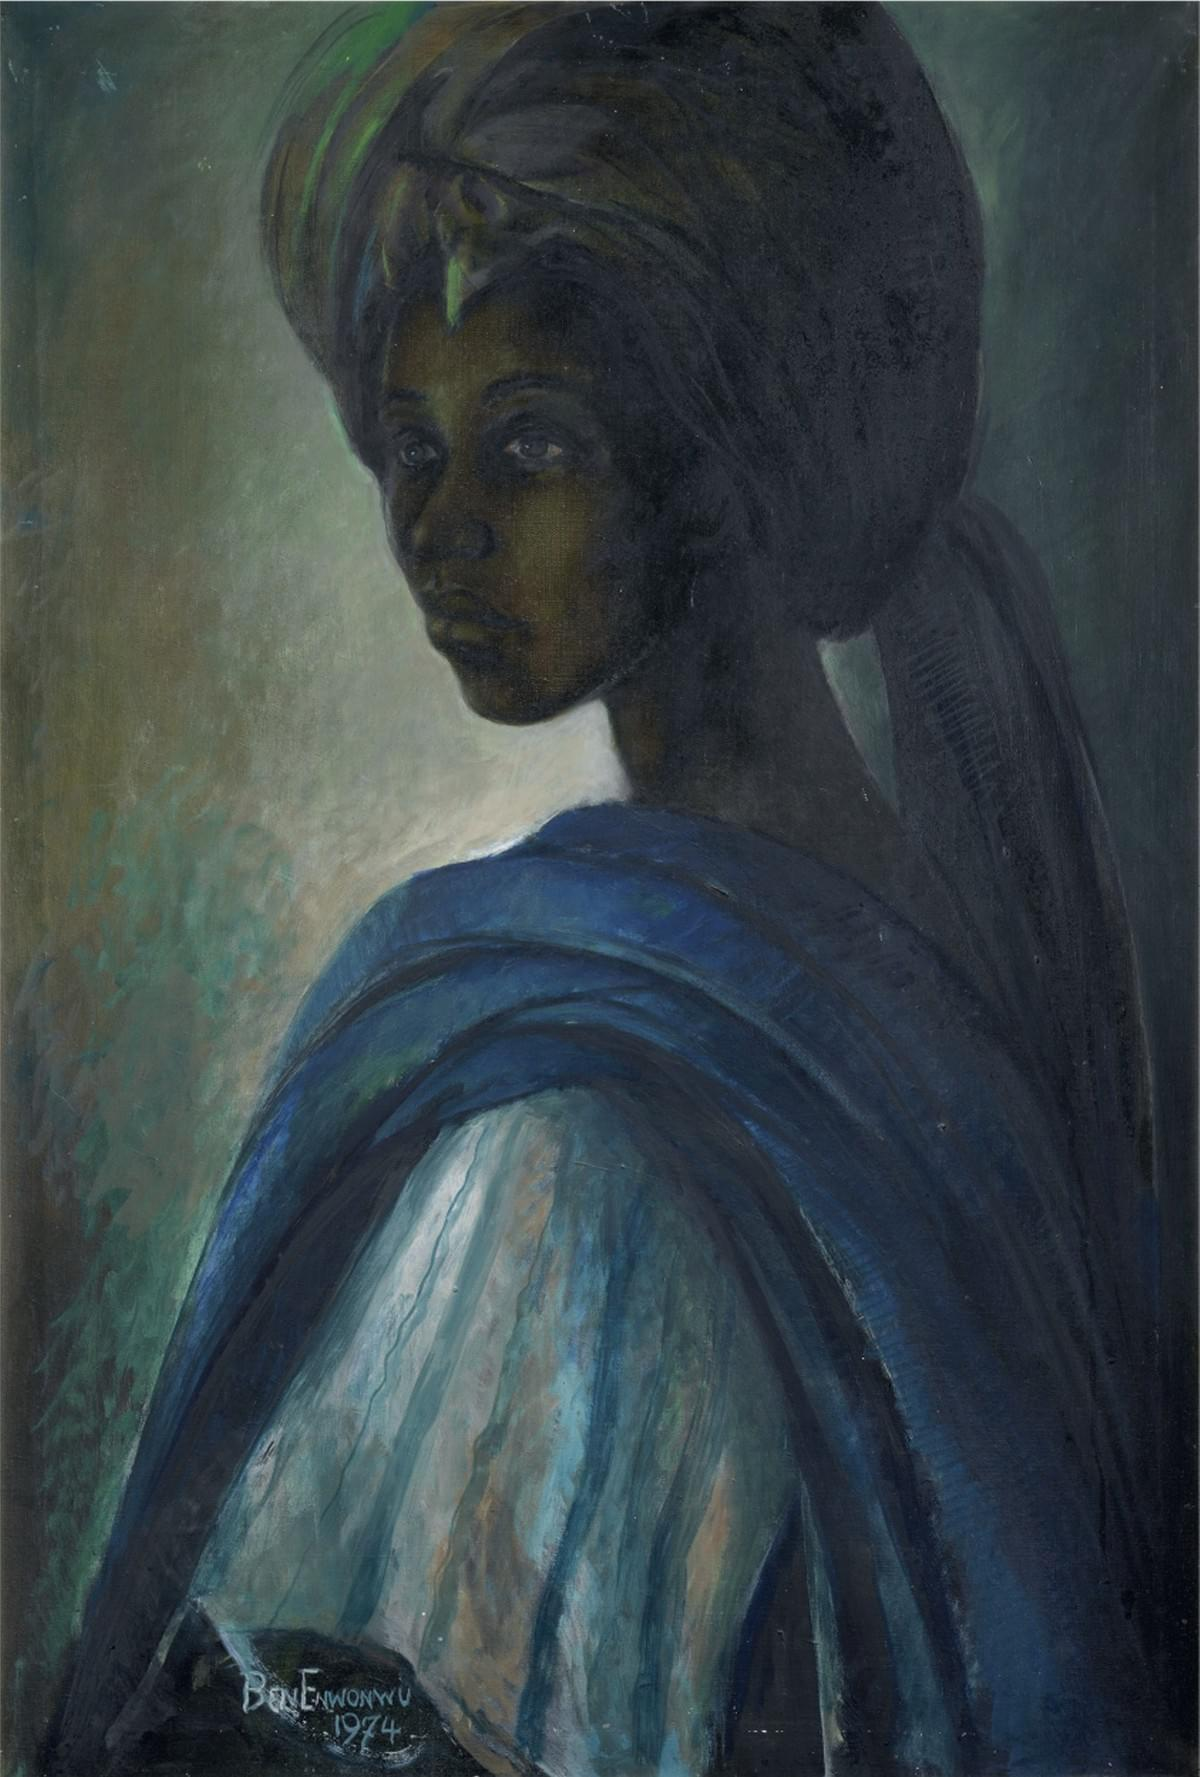 Ben Enwonwu Tutu, Oil on Canvas (97 x 66.5cm) (Photo Credit: Bonhams)